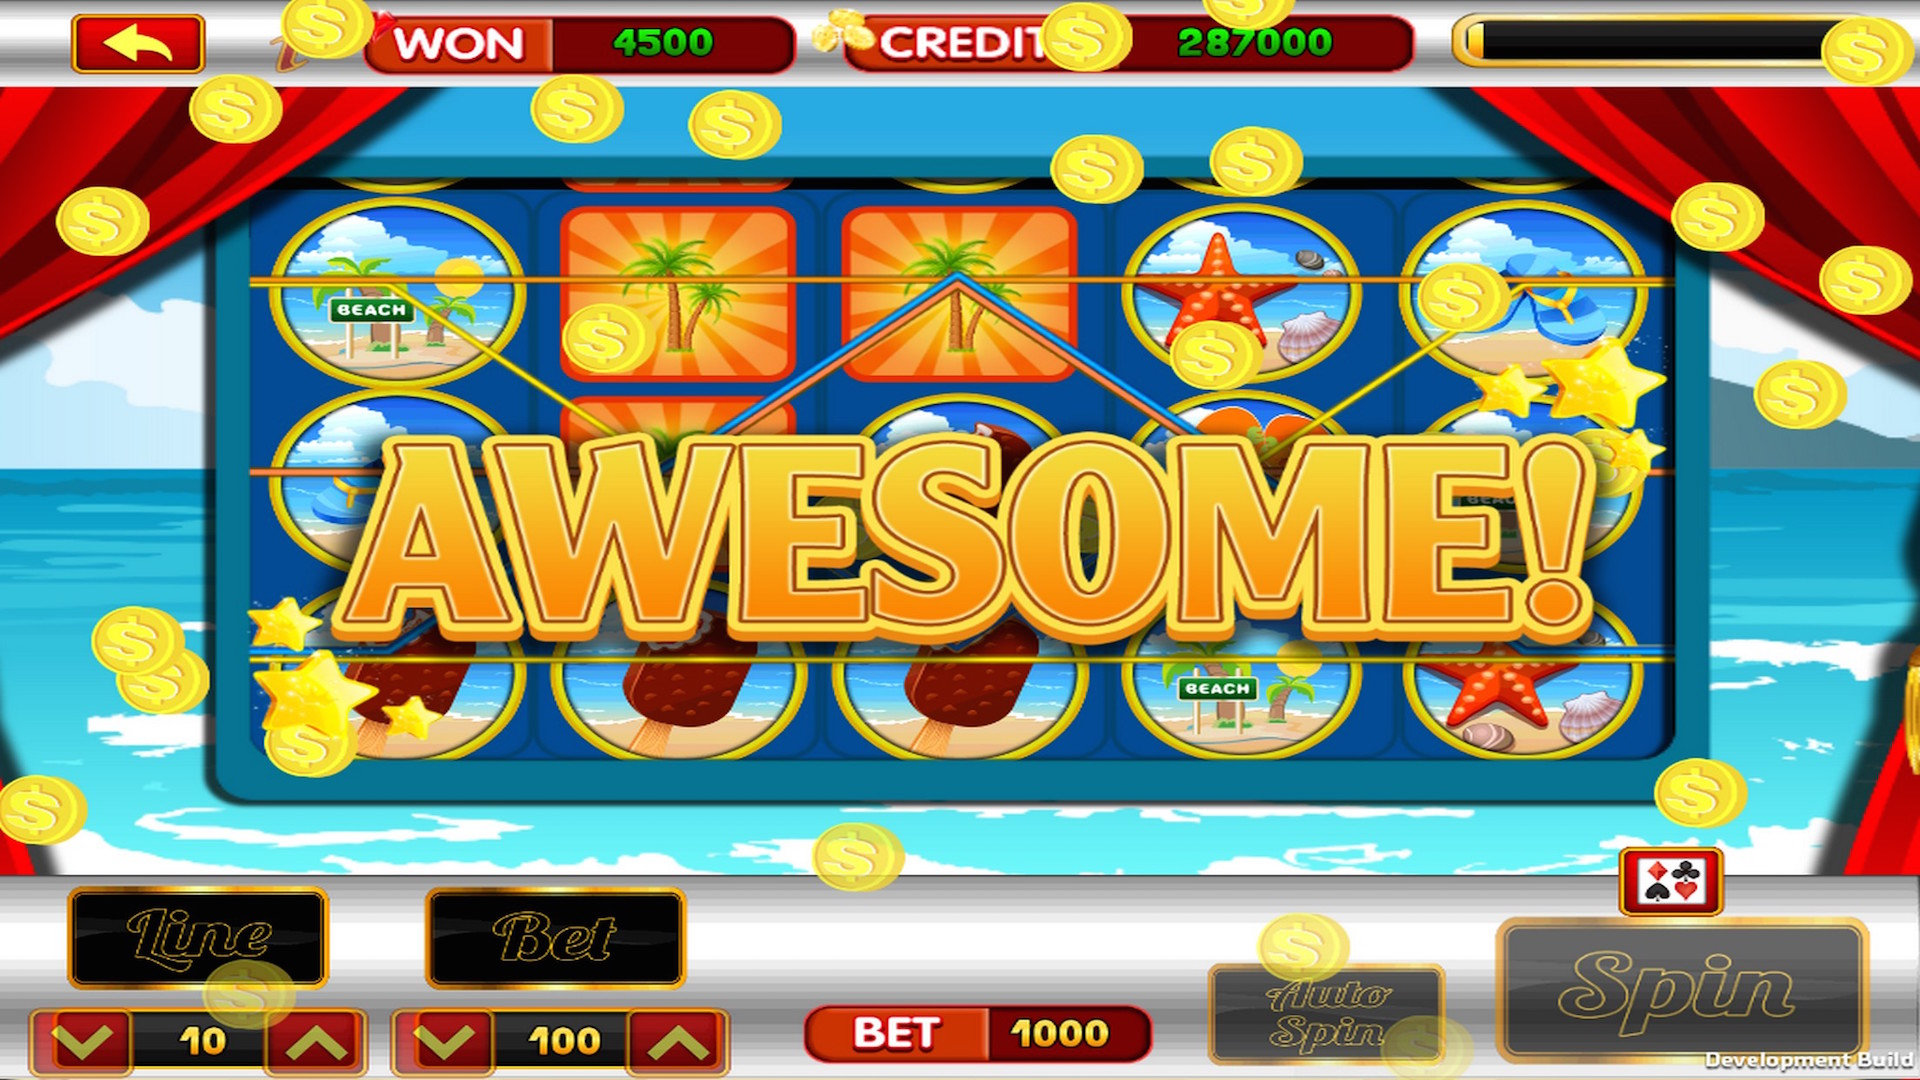 Slots lucky las vegas big vacation free casino video for Fish casino slot